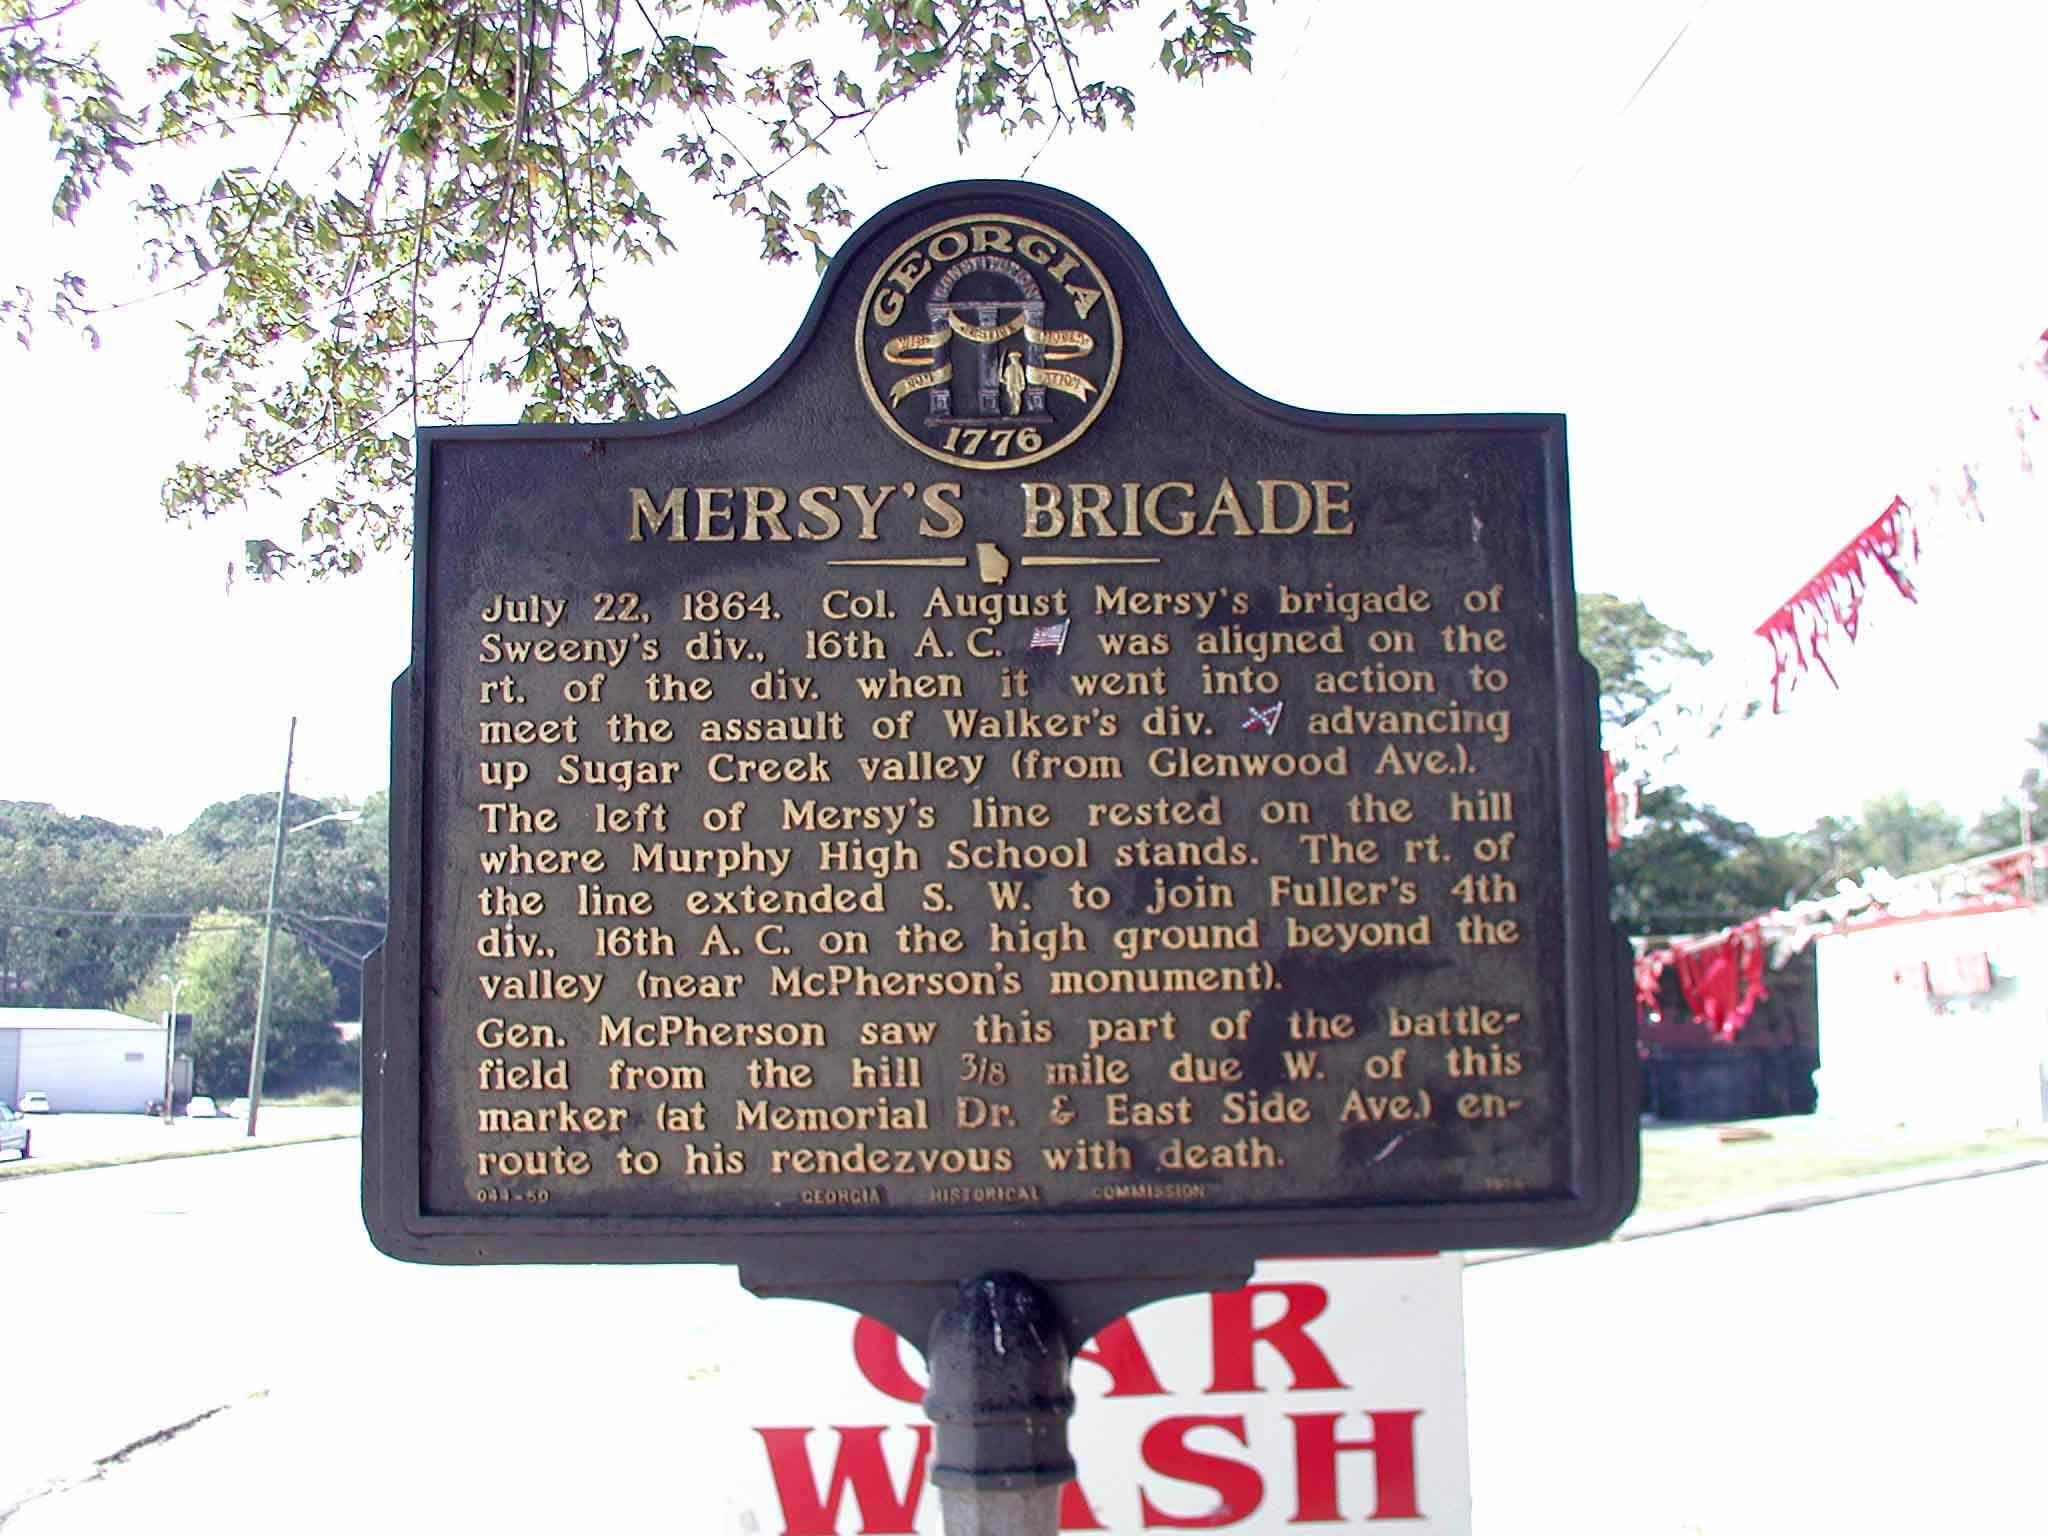 Mersy's Brigade, click photo to enlarge.